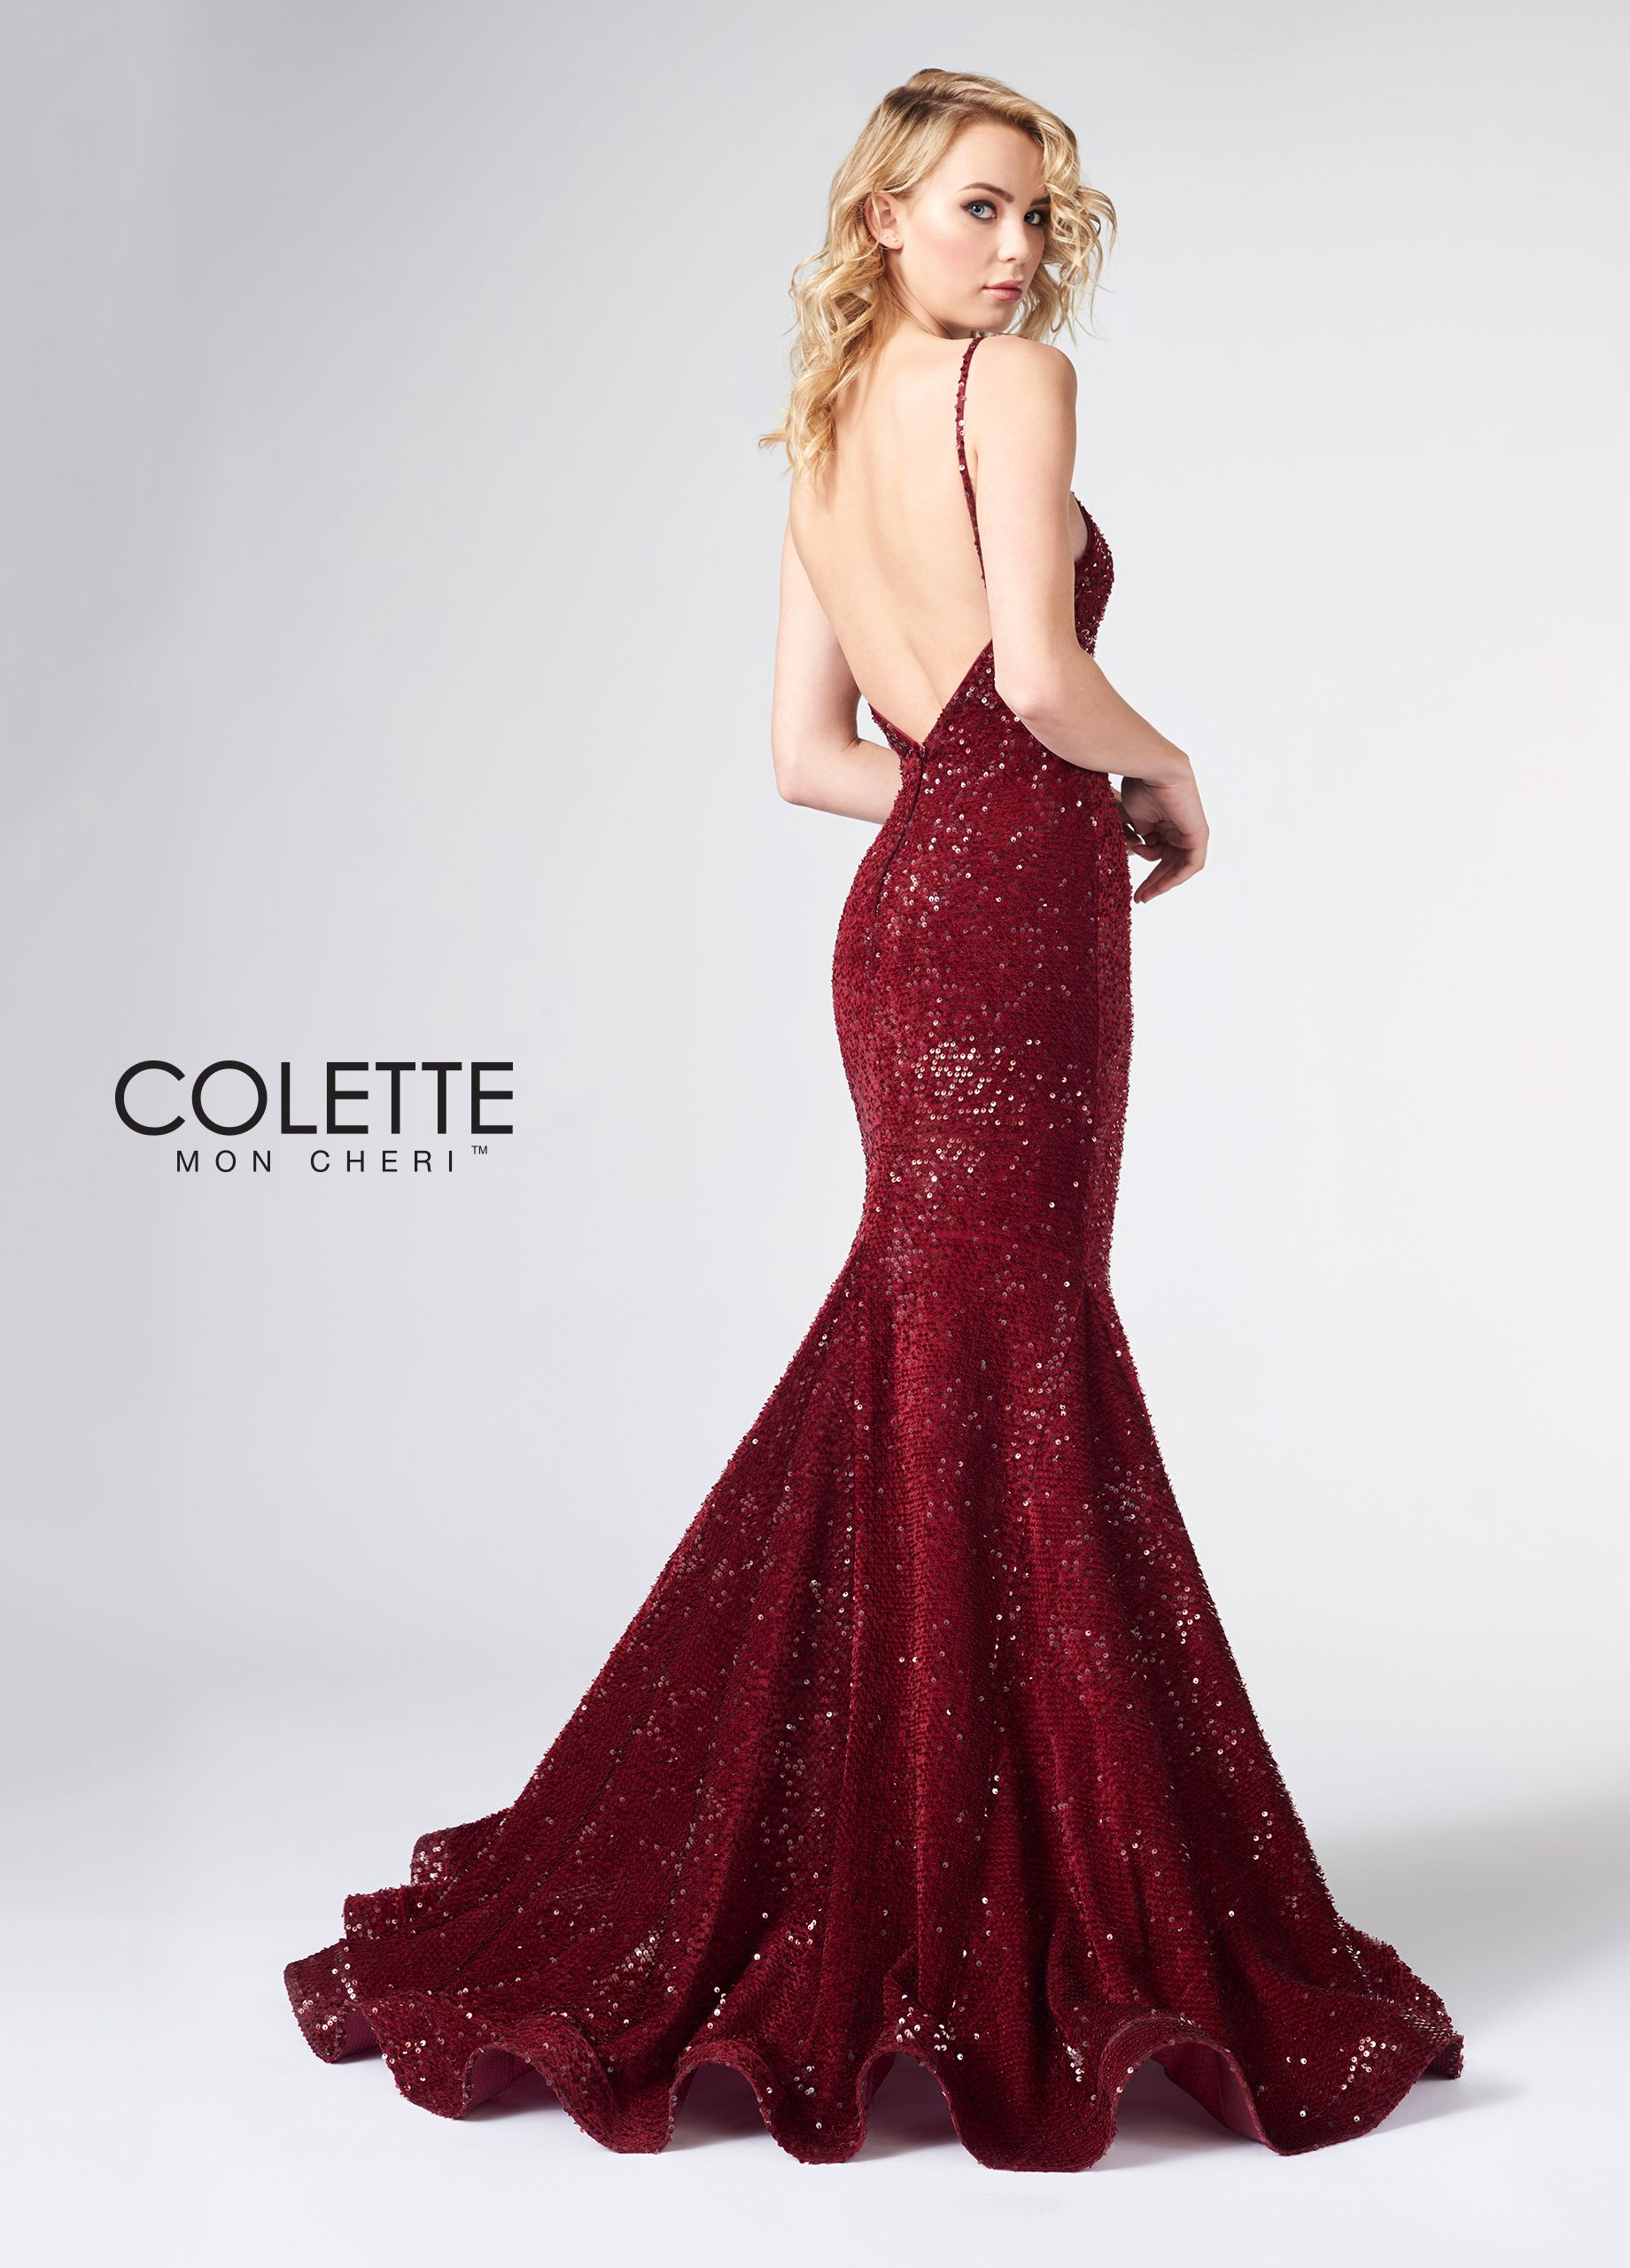 25eabdf7da Colette for Mon Cheri CL21862 - Strut like a celebrity in this sleeveless  stretch sequin velvet trumpet gown with beaded spaghetti straps, a curved  neckline ...